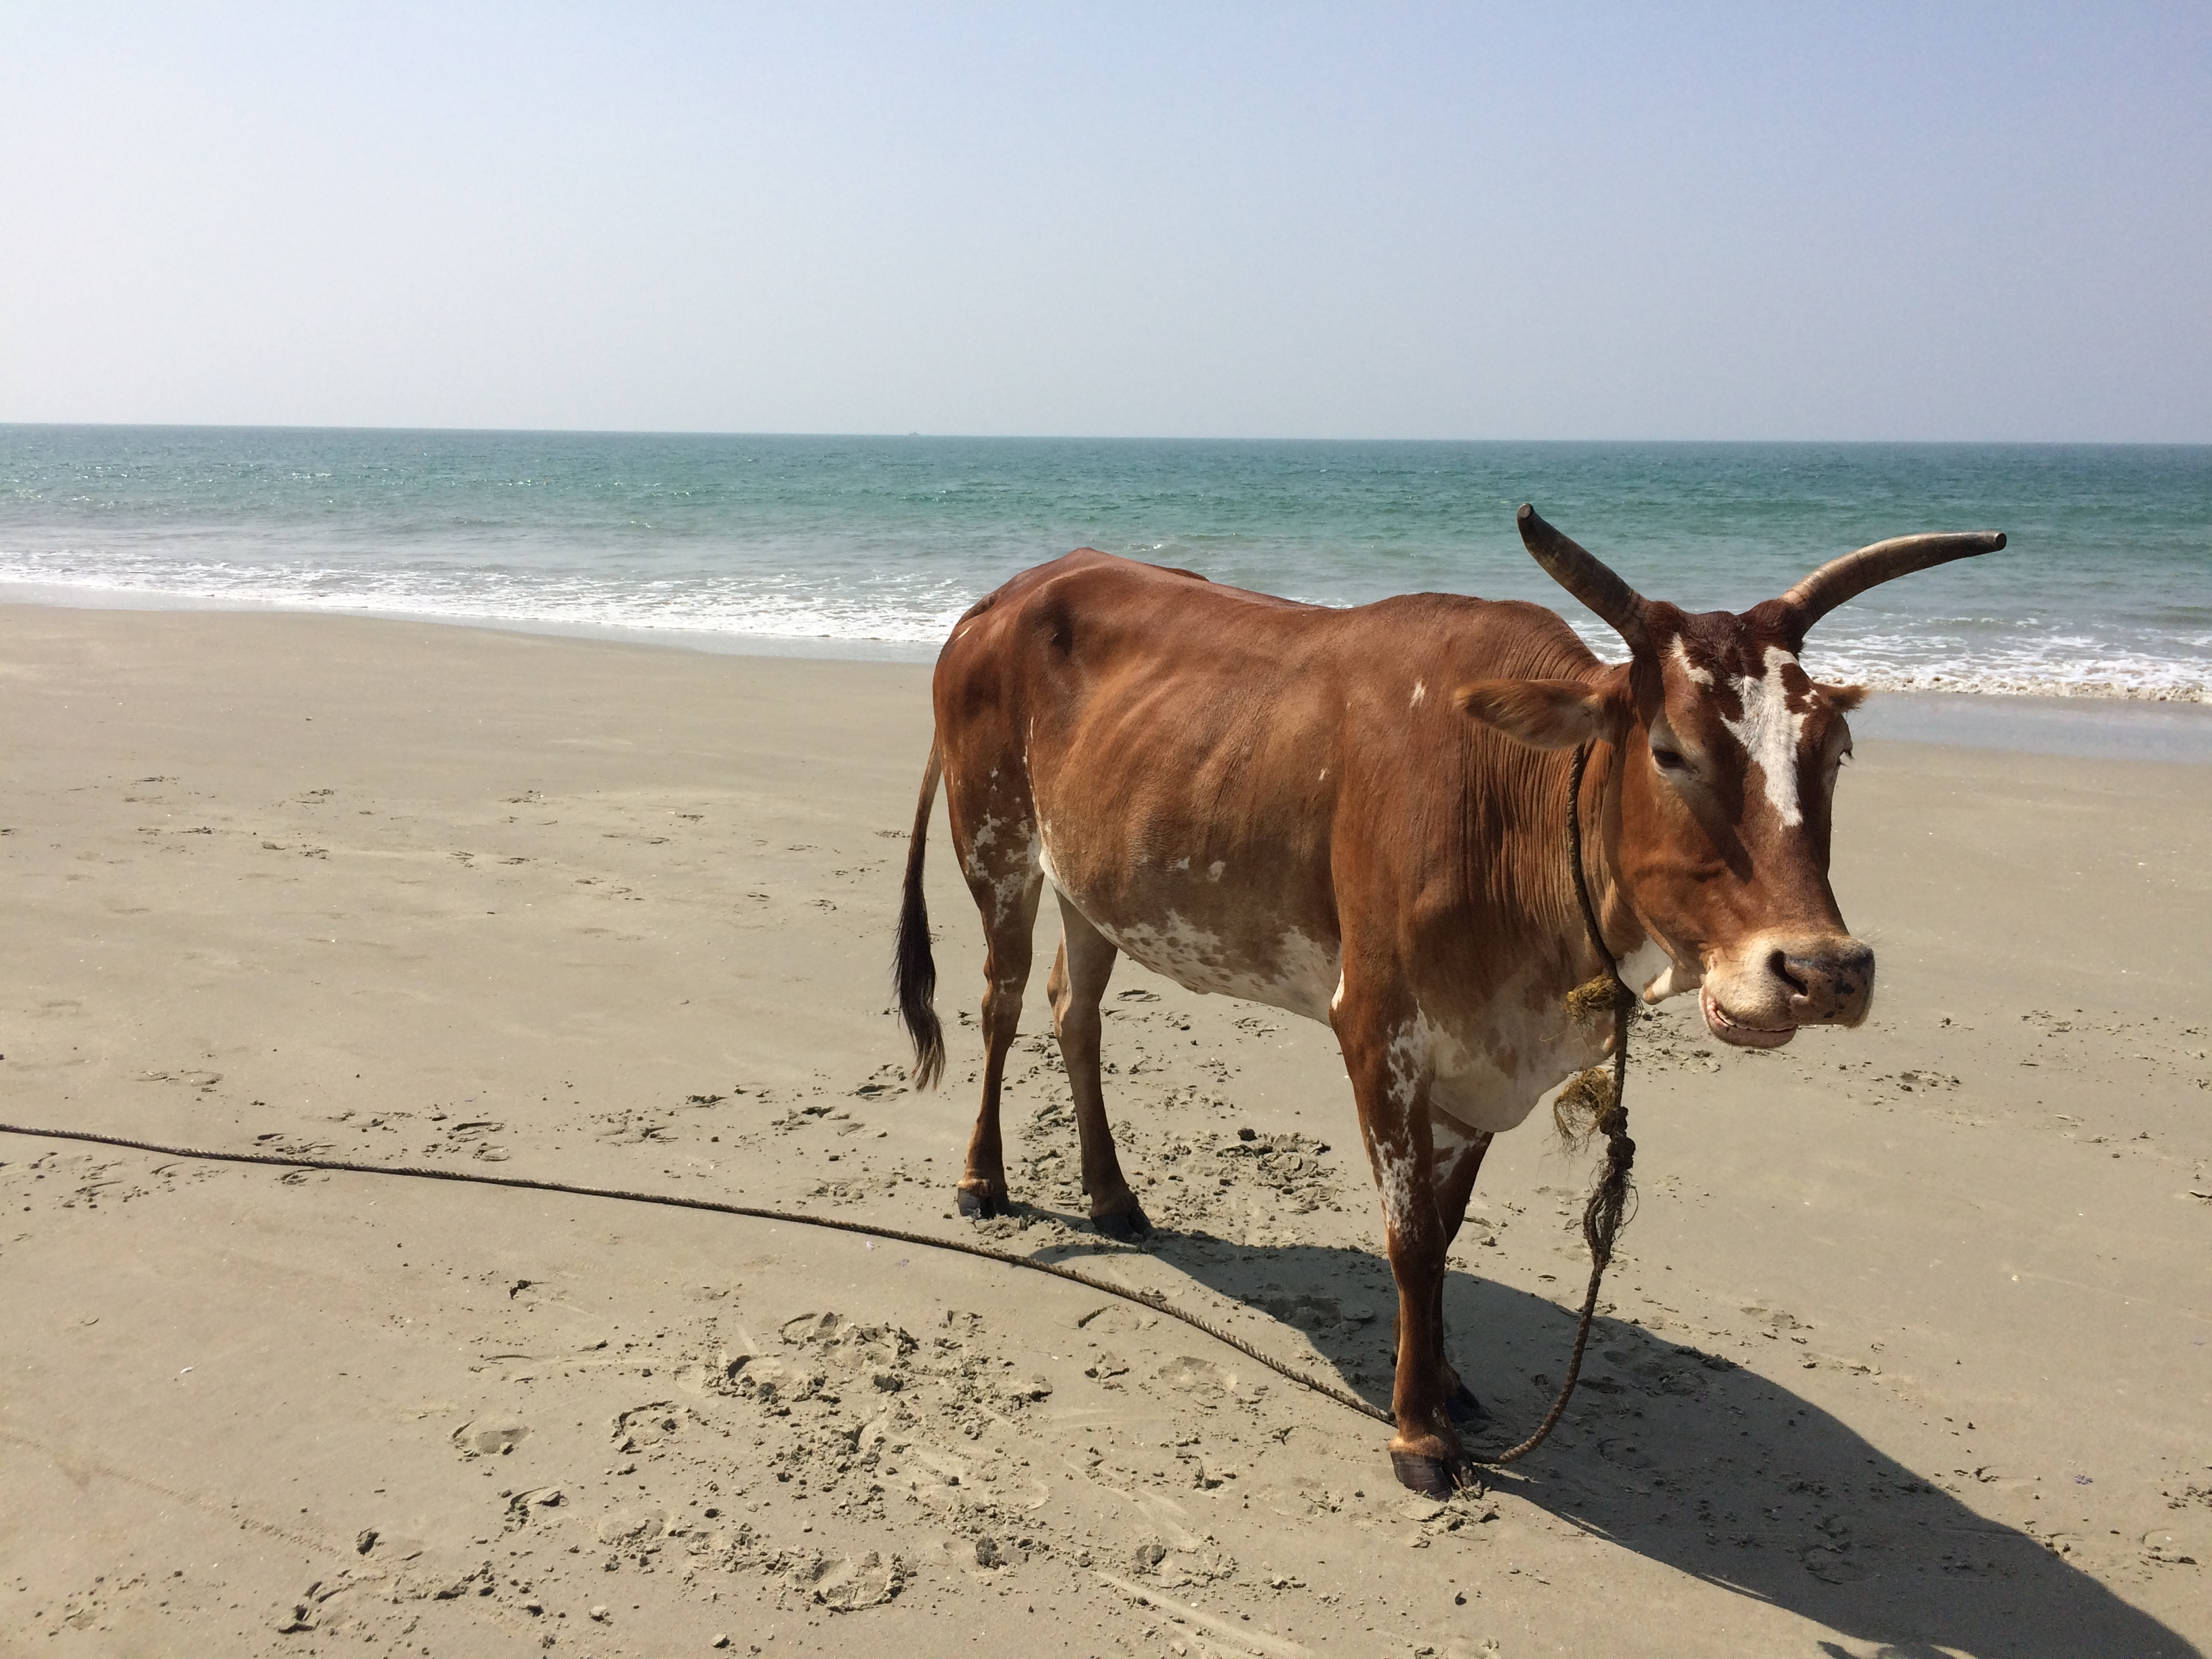 Cow on the beach in Goa, India